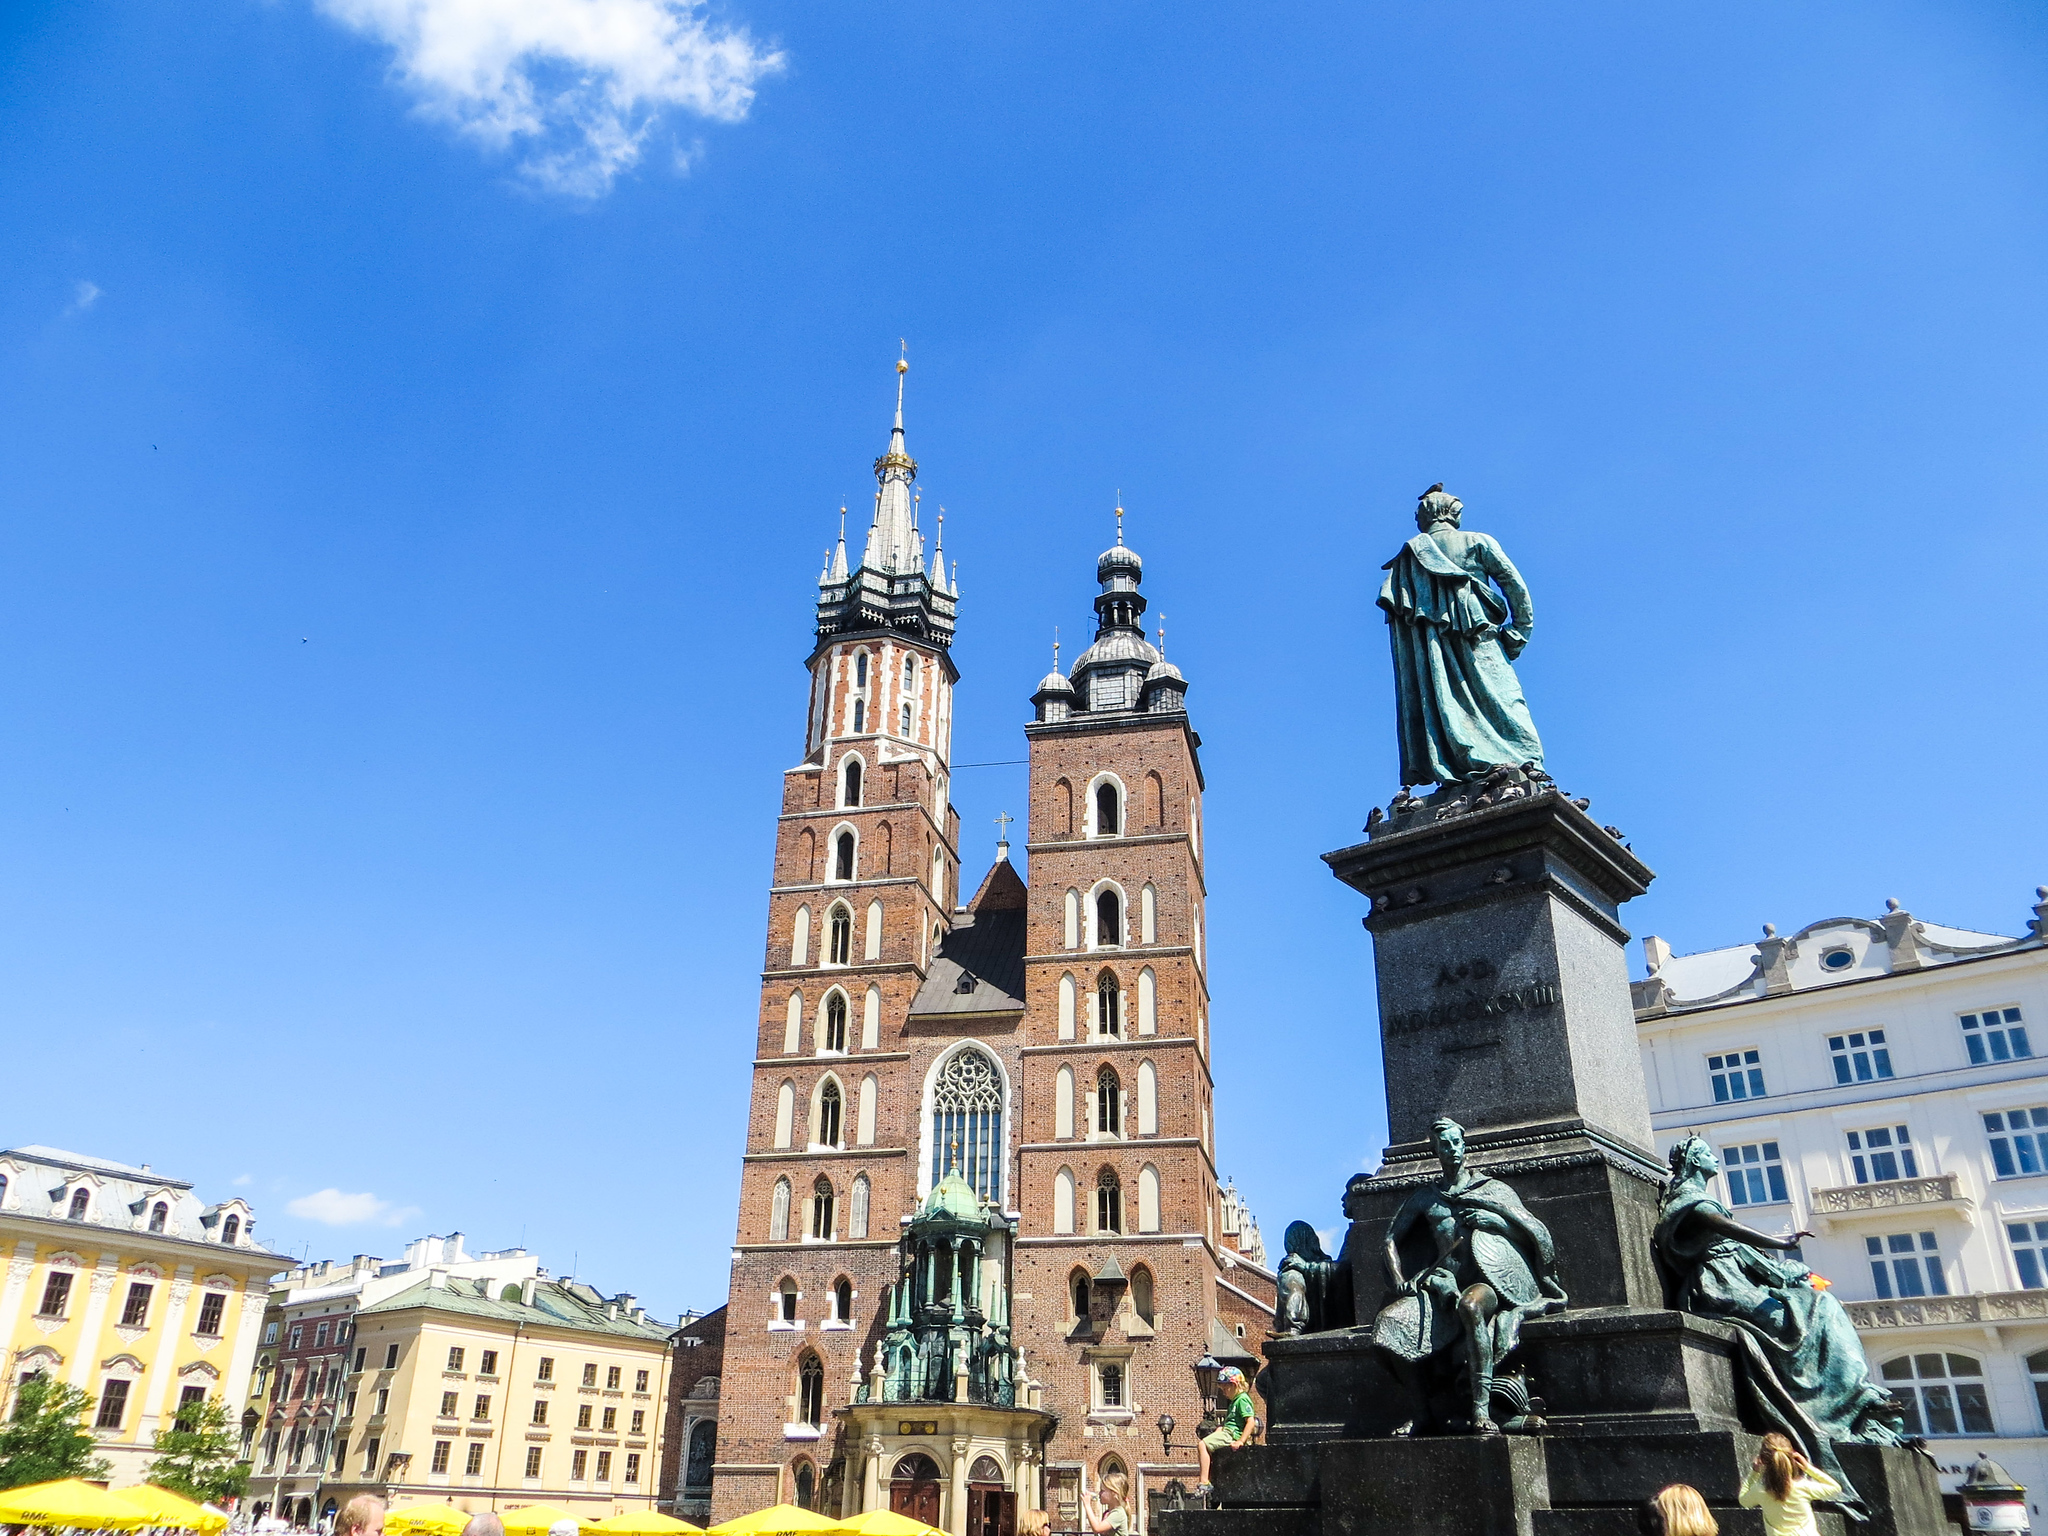 travel europe alone and go to poland